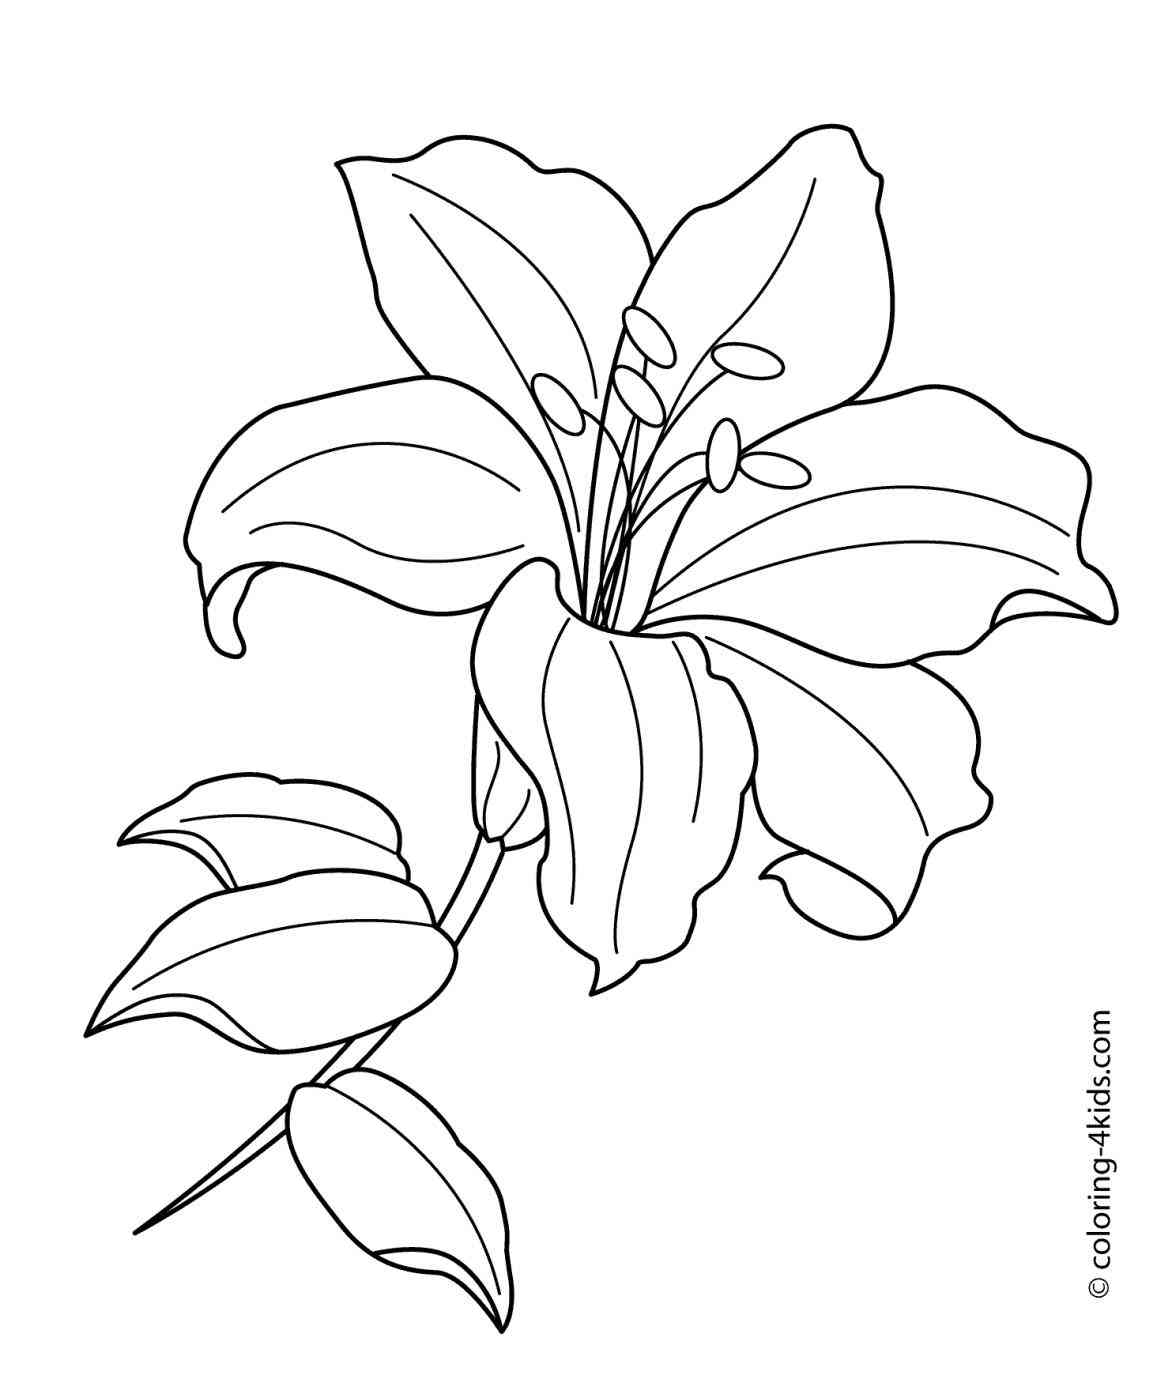 Rose Line Drawing at GetDrawings.com | Free for personal use Rose ...